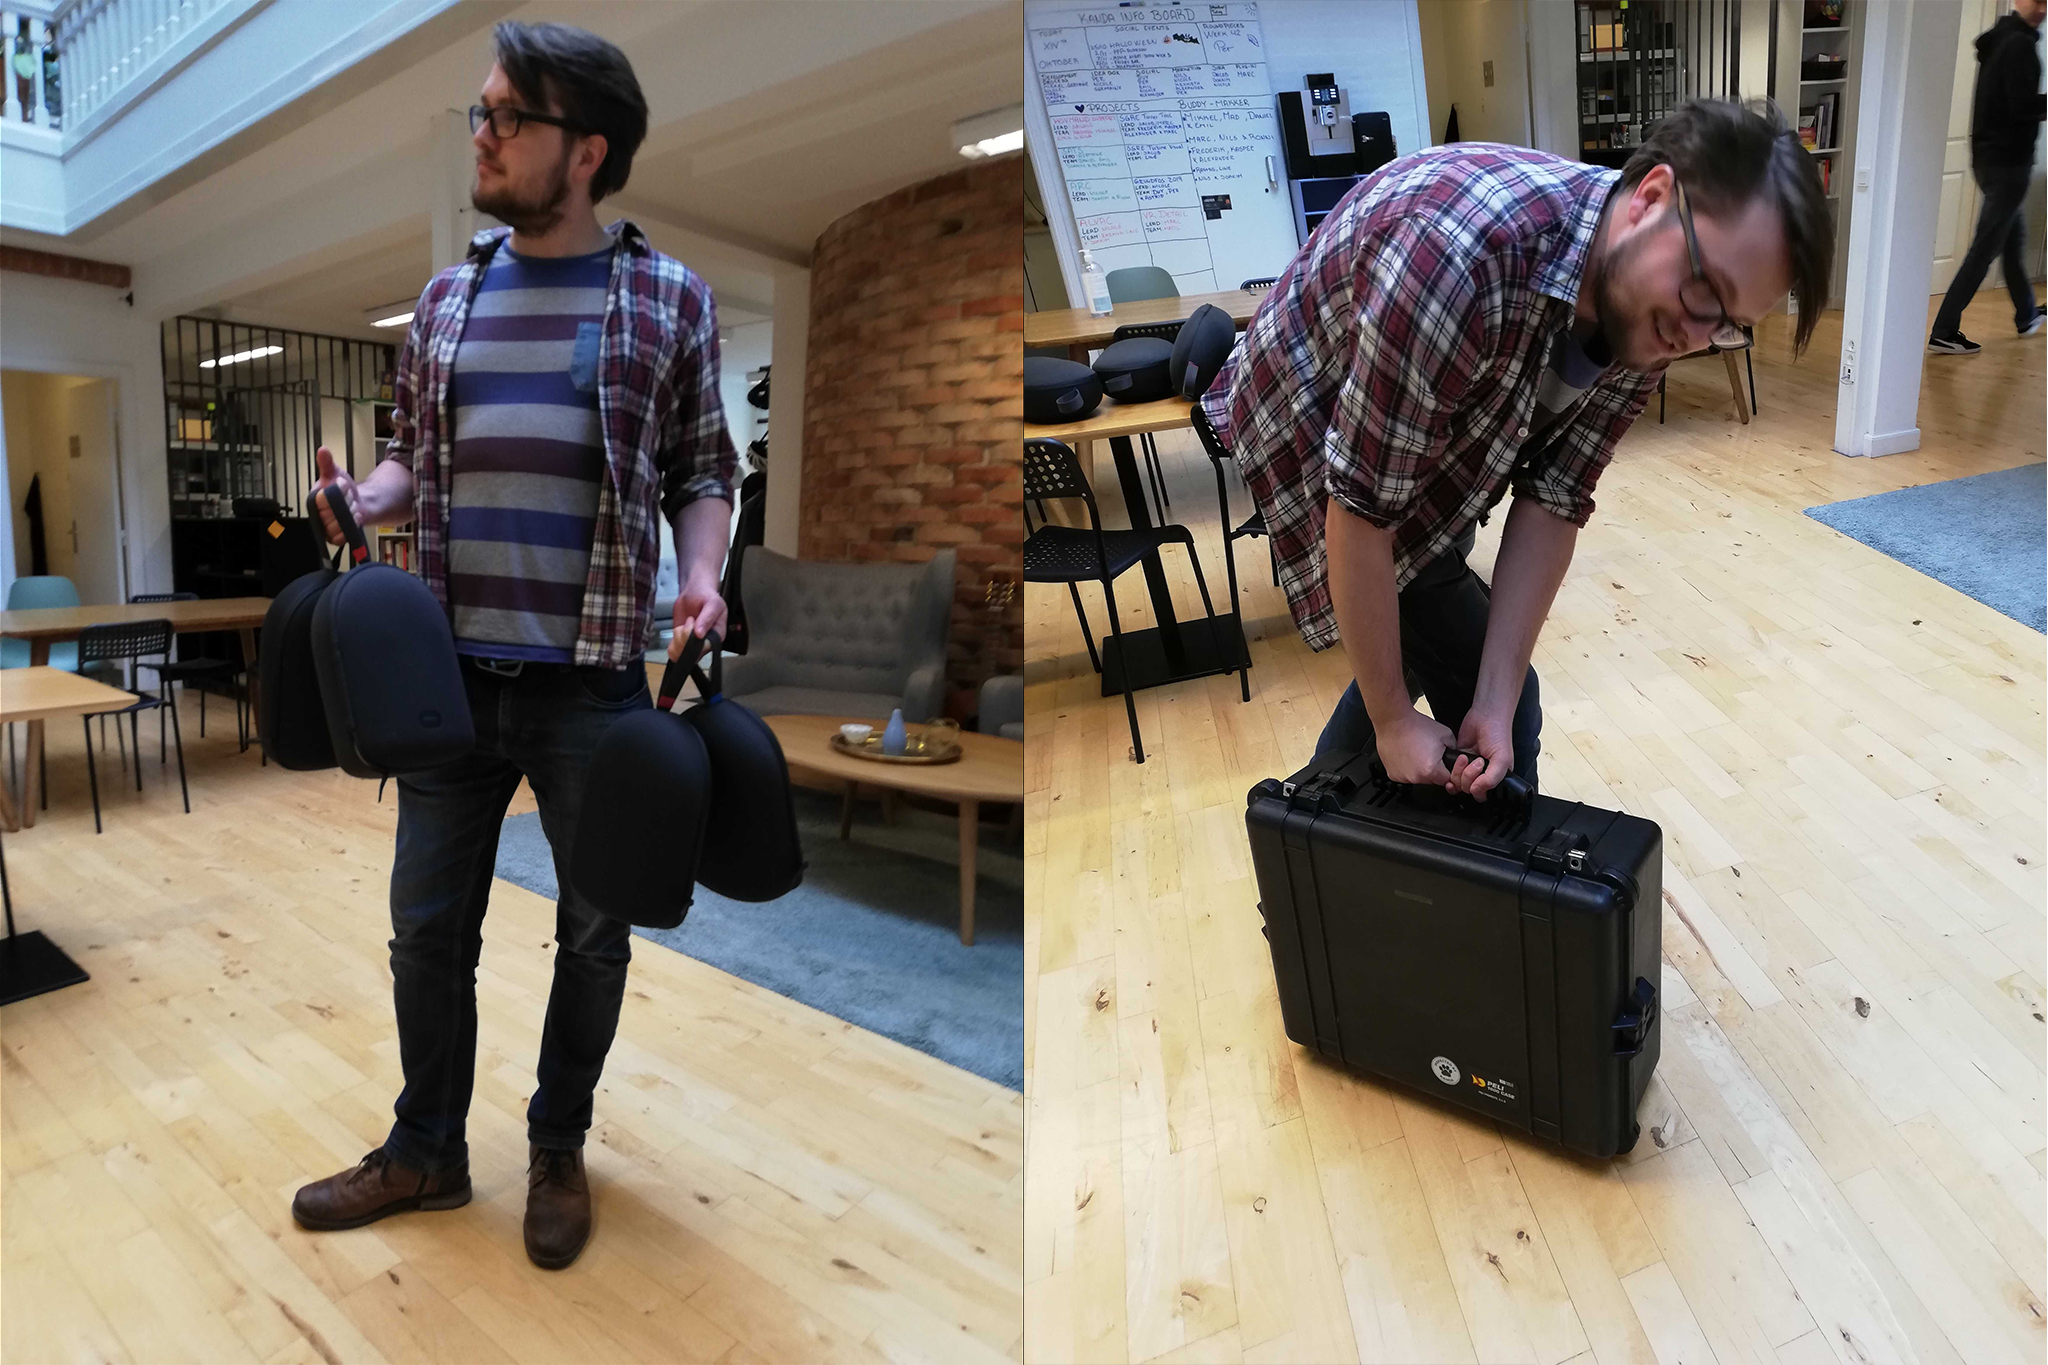 On the left, you can see how we at Kanda transport 4 x Oculus Quests in their travel casings when we go out to do technology demonstrations. On the right, you can see how we transport a single Oculus Rift S and an Alienware laptop.